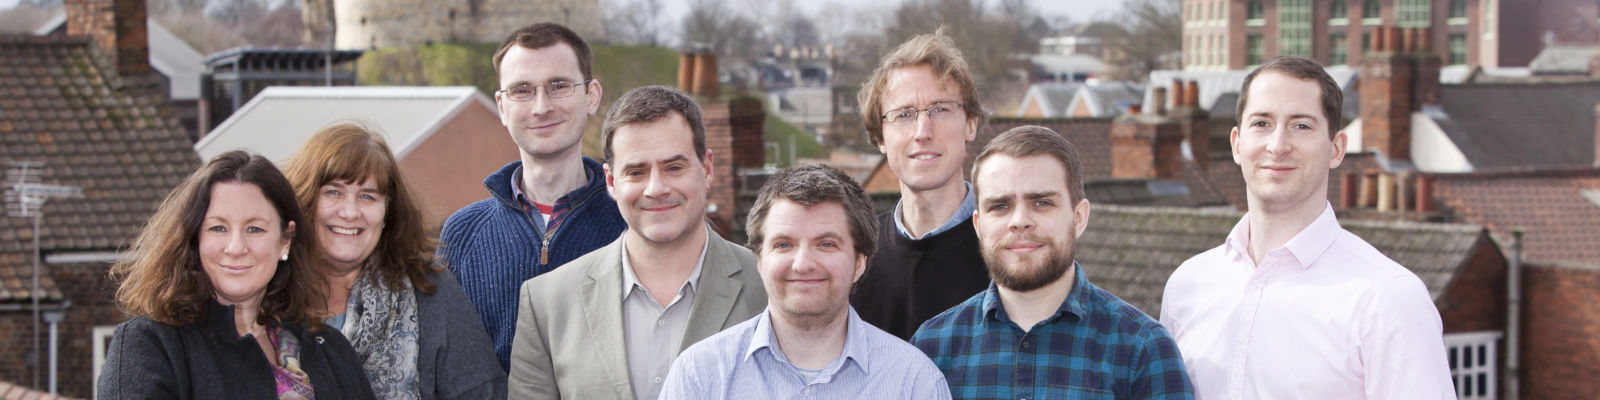 Our website design and development team in York